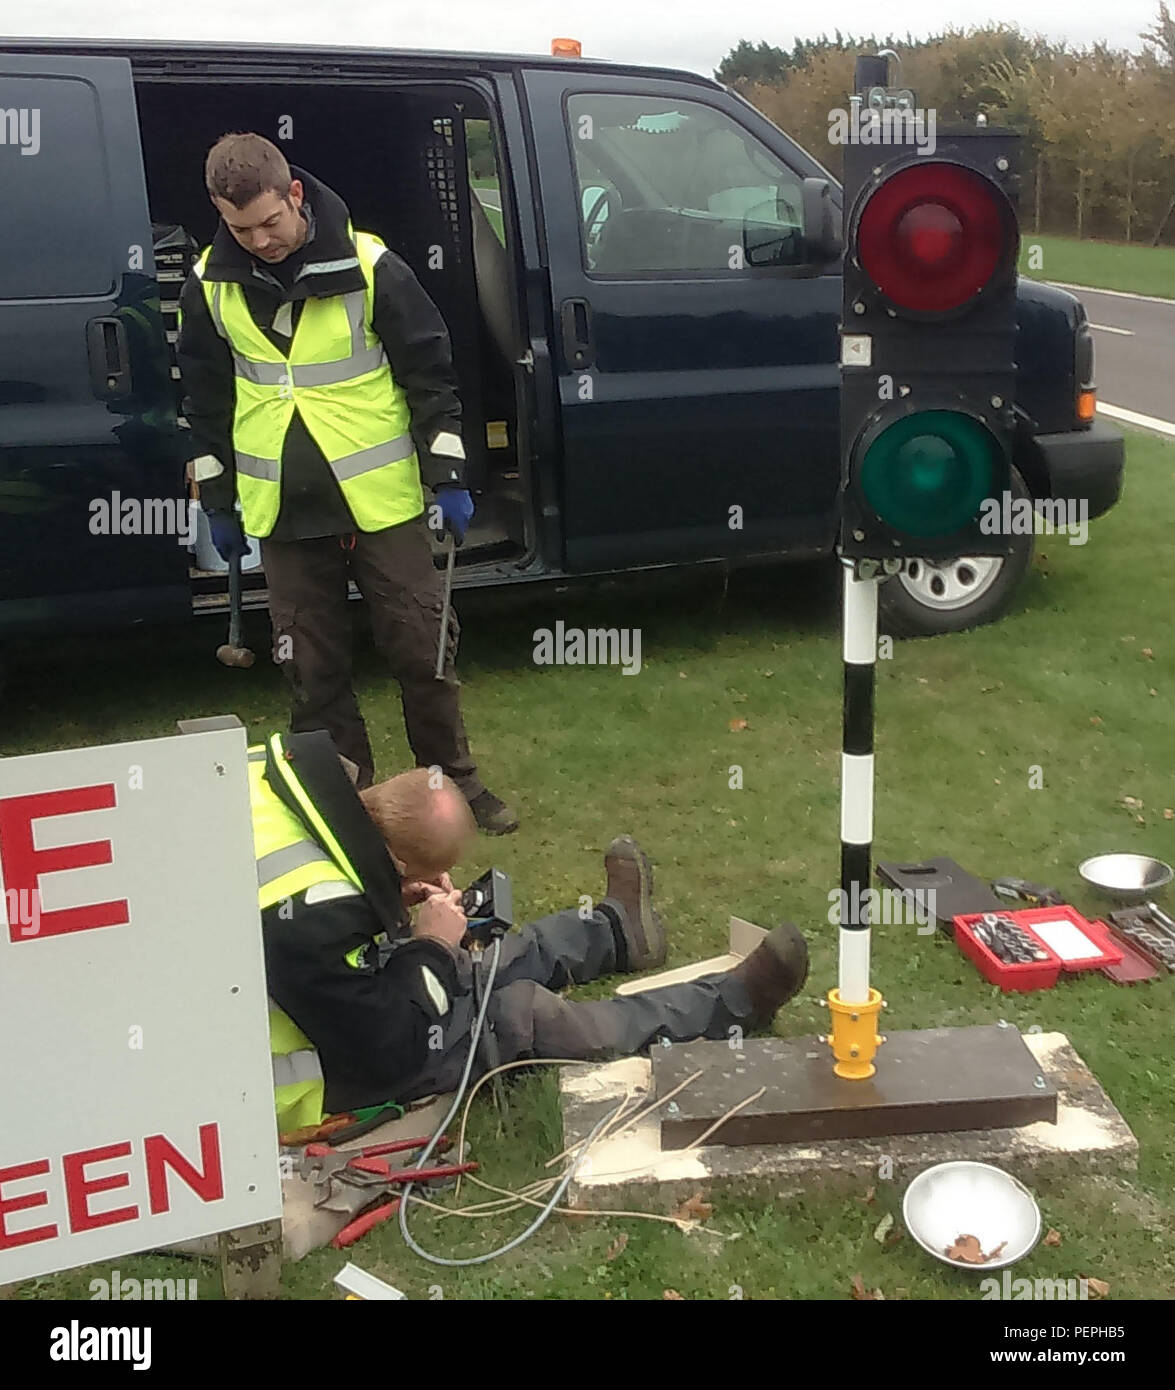 Members of the 100th Civil Engineer Squadron, connect the electrical control cables to the new perimeter road traffic lights Nov. 10, 2015, on RAF Mildenhall, England. These lights have been changed for safety reasons to stop vehicles entering the instrument landing system controlled areas. (Courtesy photo/Released) - Stock Image